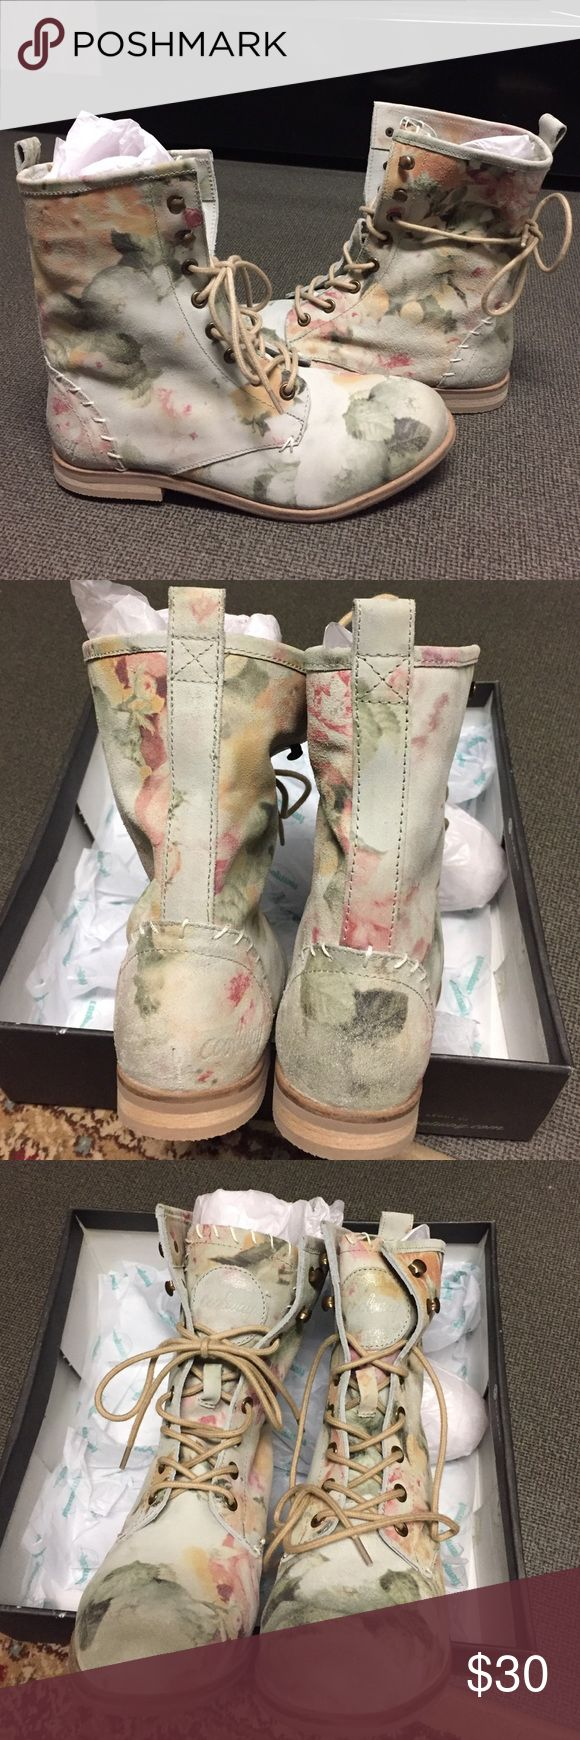 NEW NEVER WORN Coolway leather floral combat boots I got these in the wrong size by accident! Literally never worn. Made with cow leather. Light pastel floral color.  Feel free to make me an offer! Coolway Shoes Combat & Moto Boots